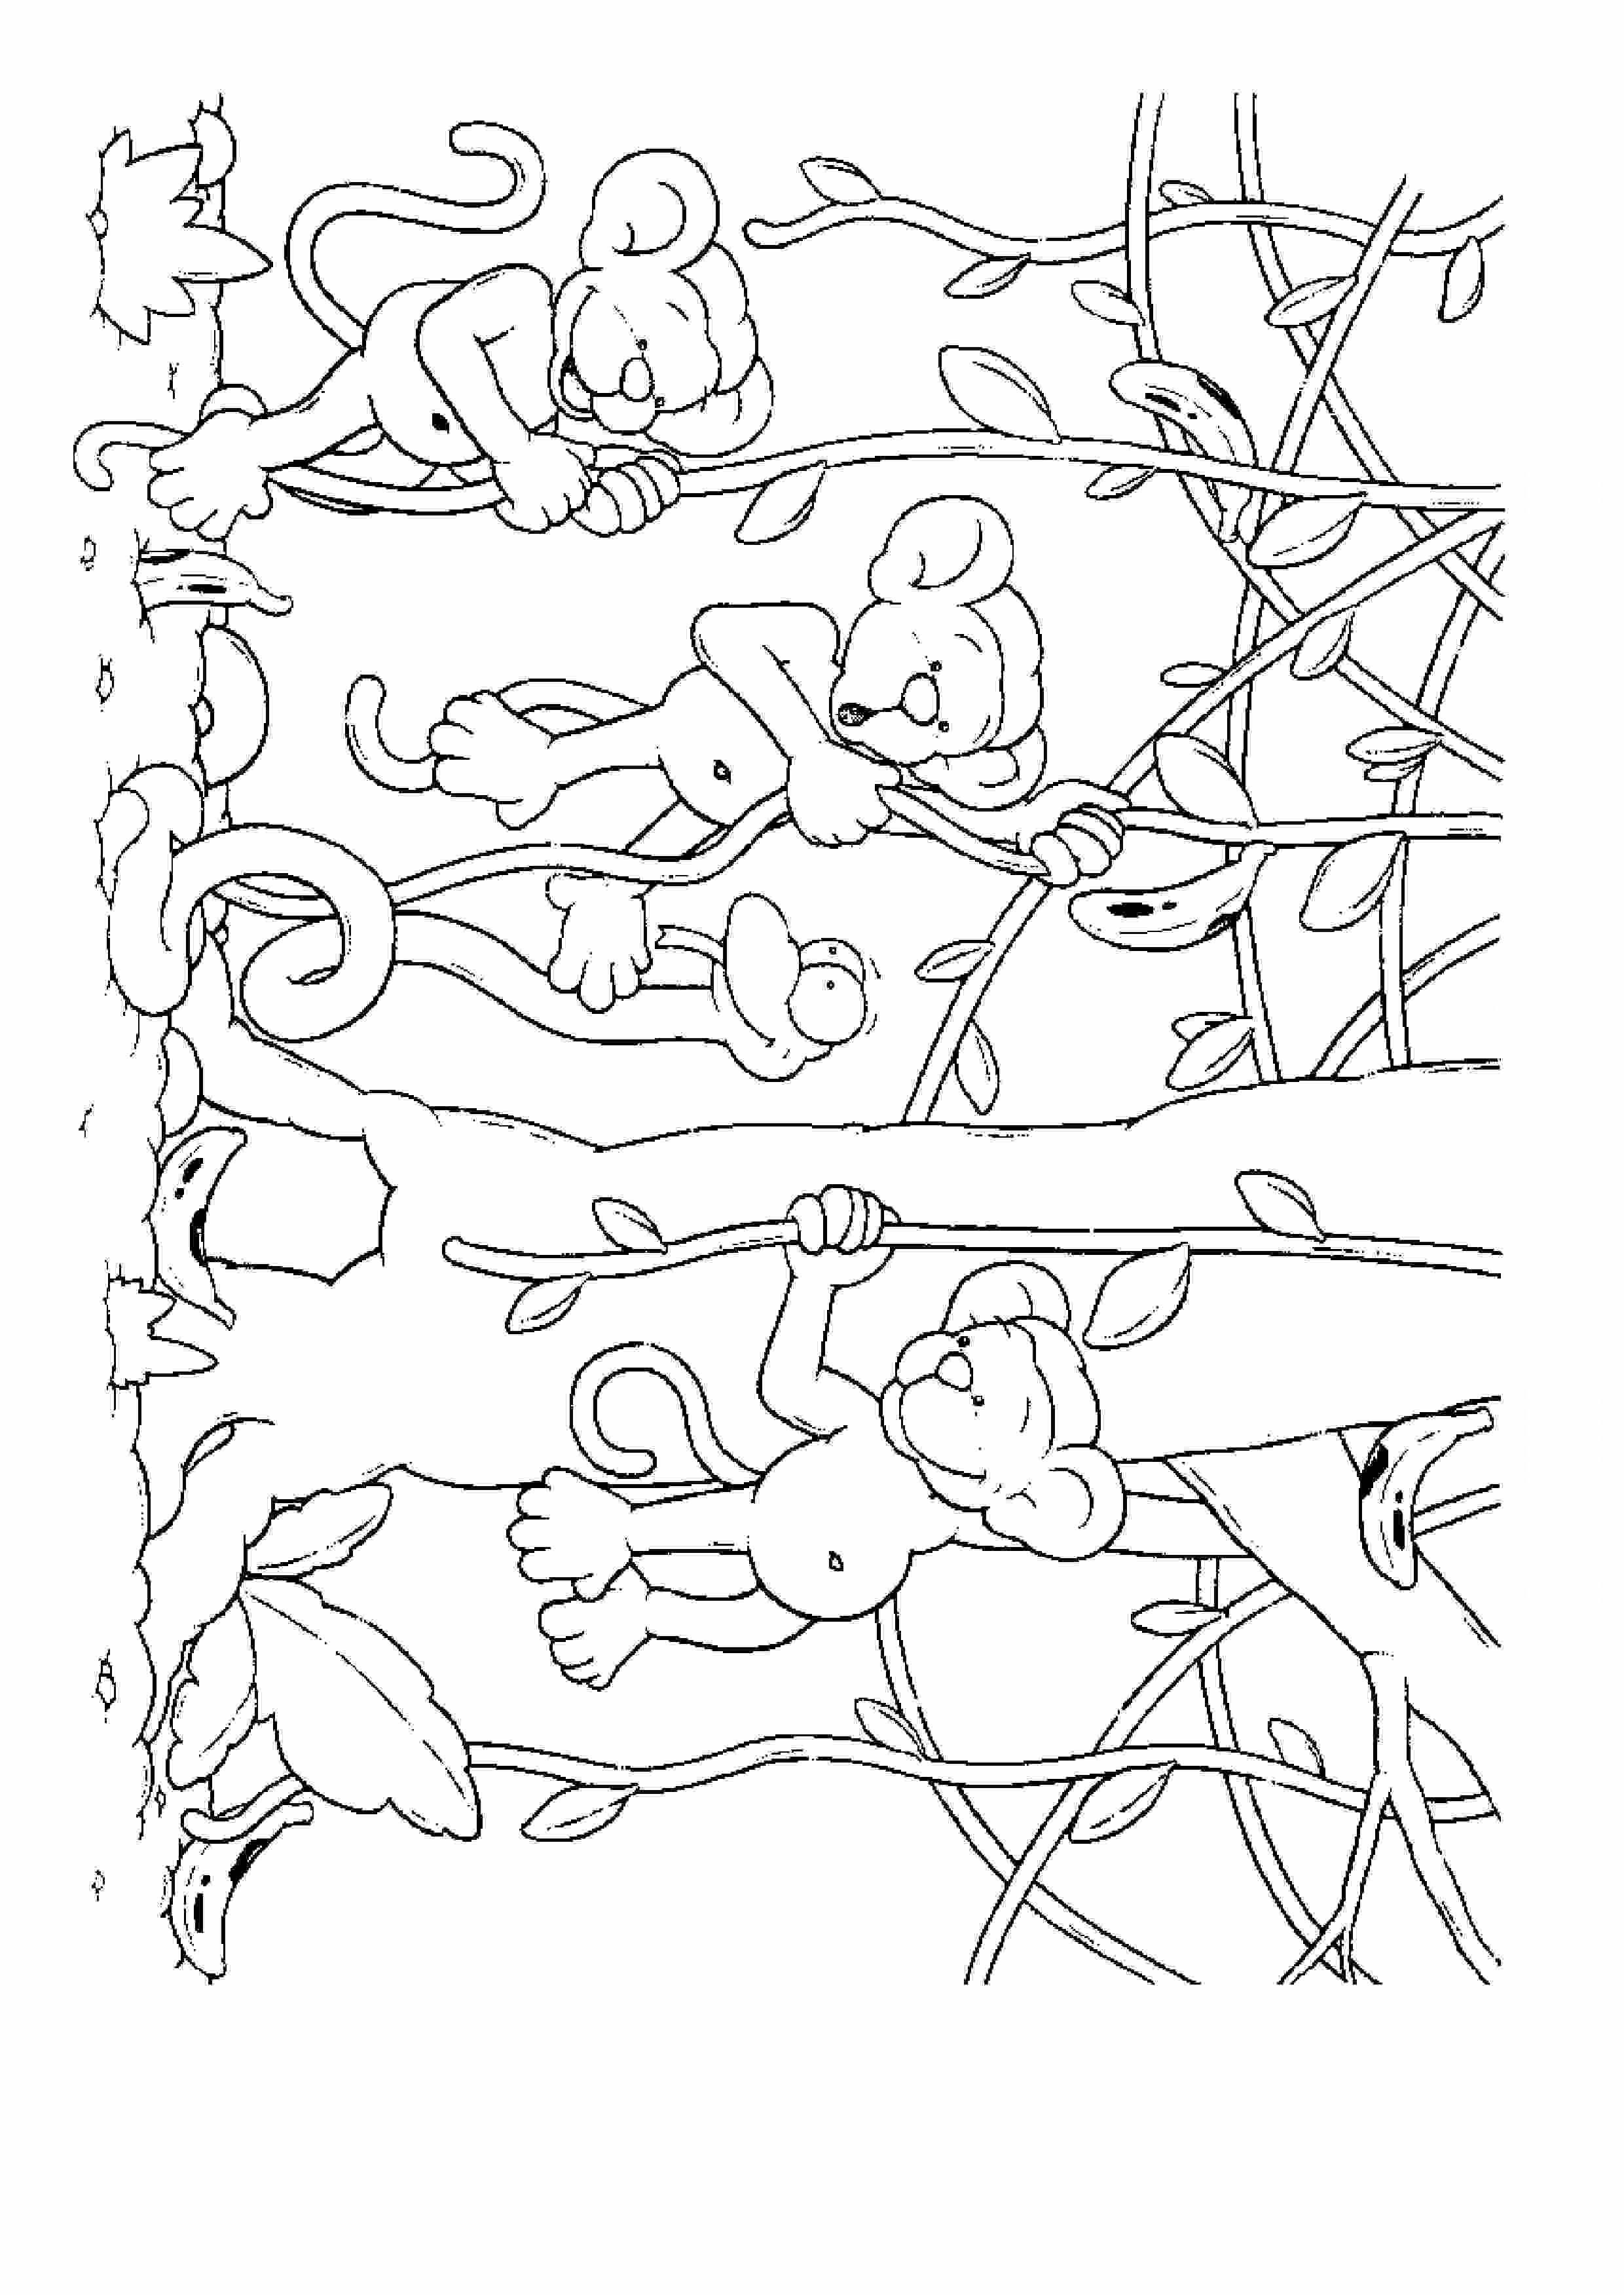 Printable Worksheets For Kids Search And Coloring 1